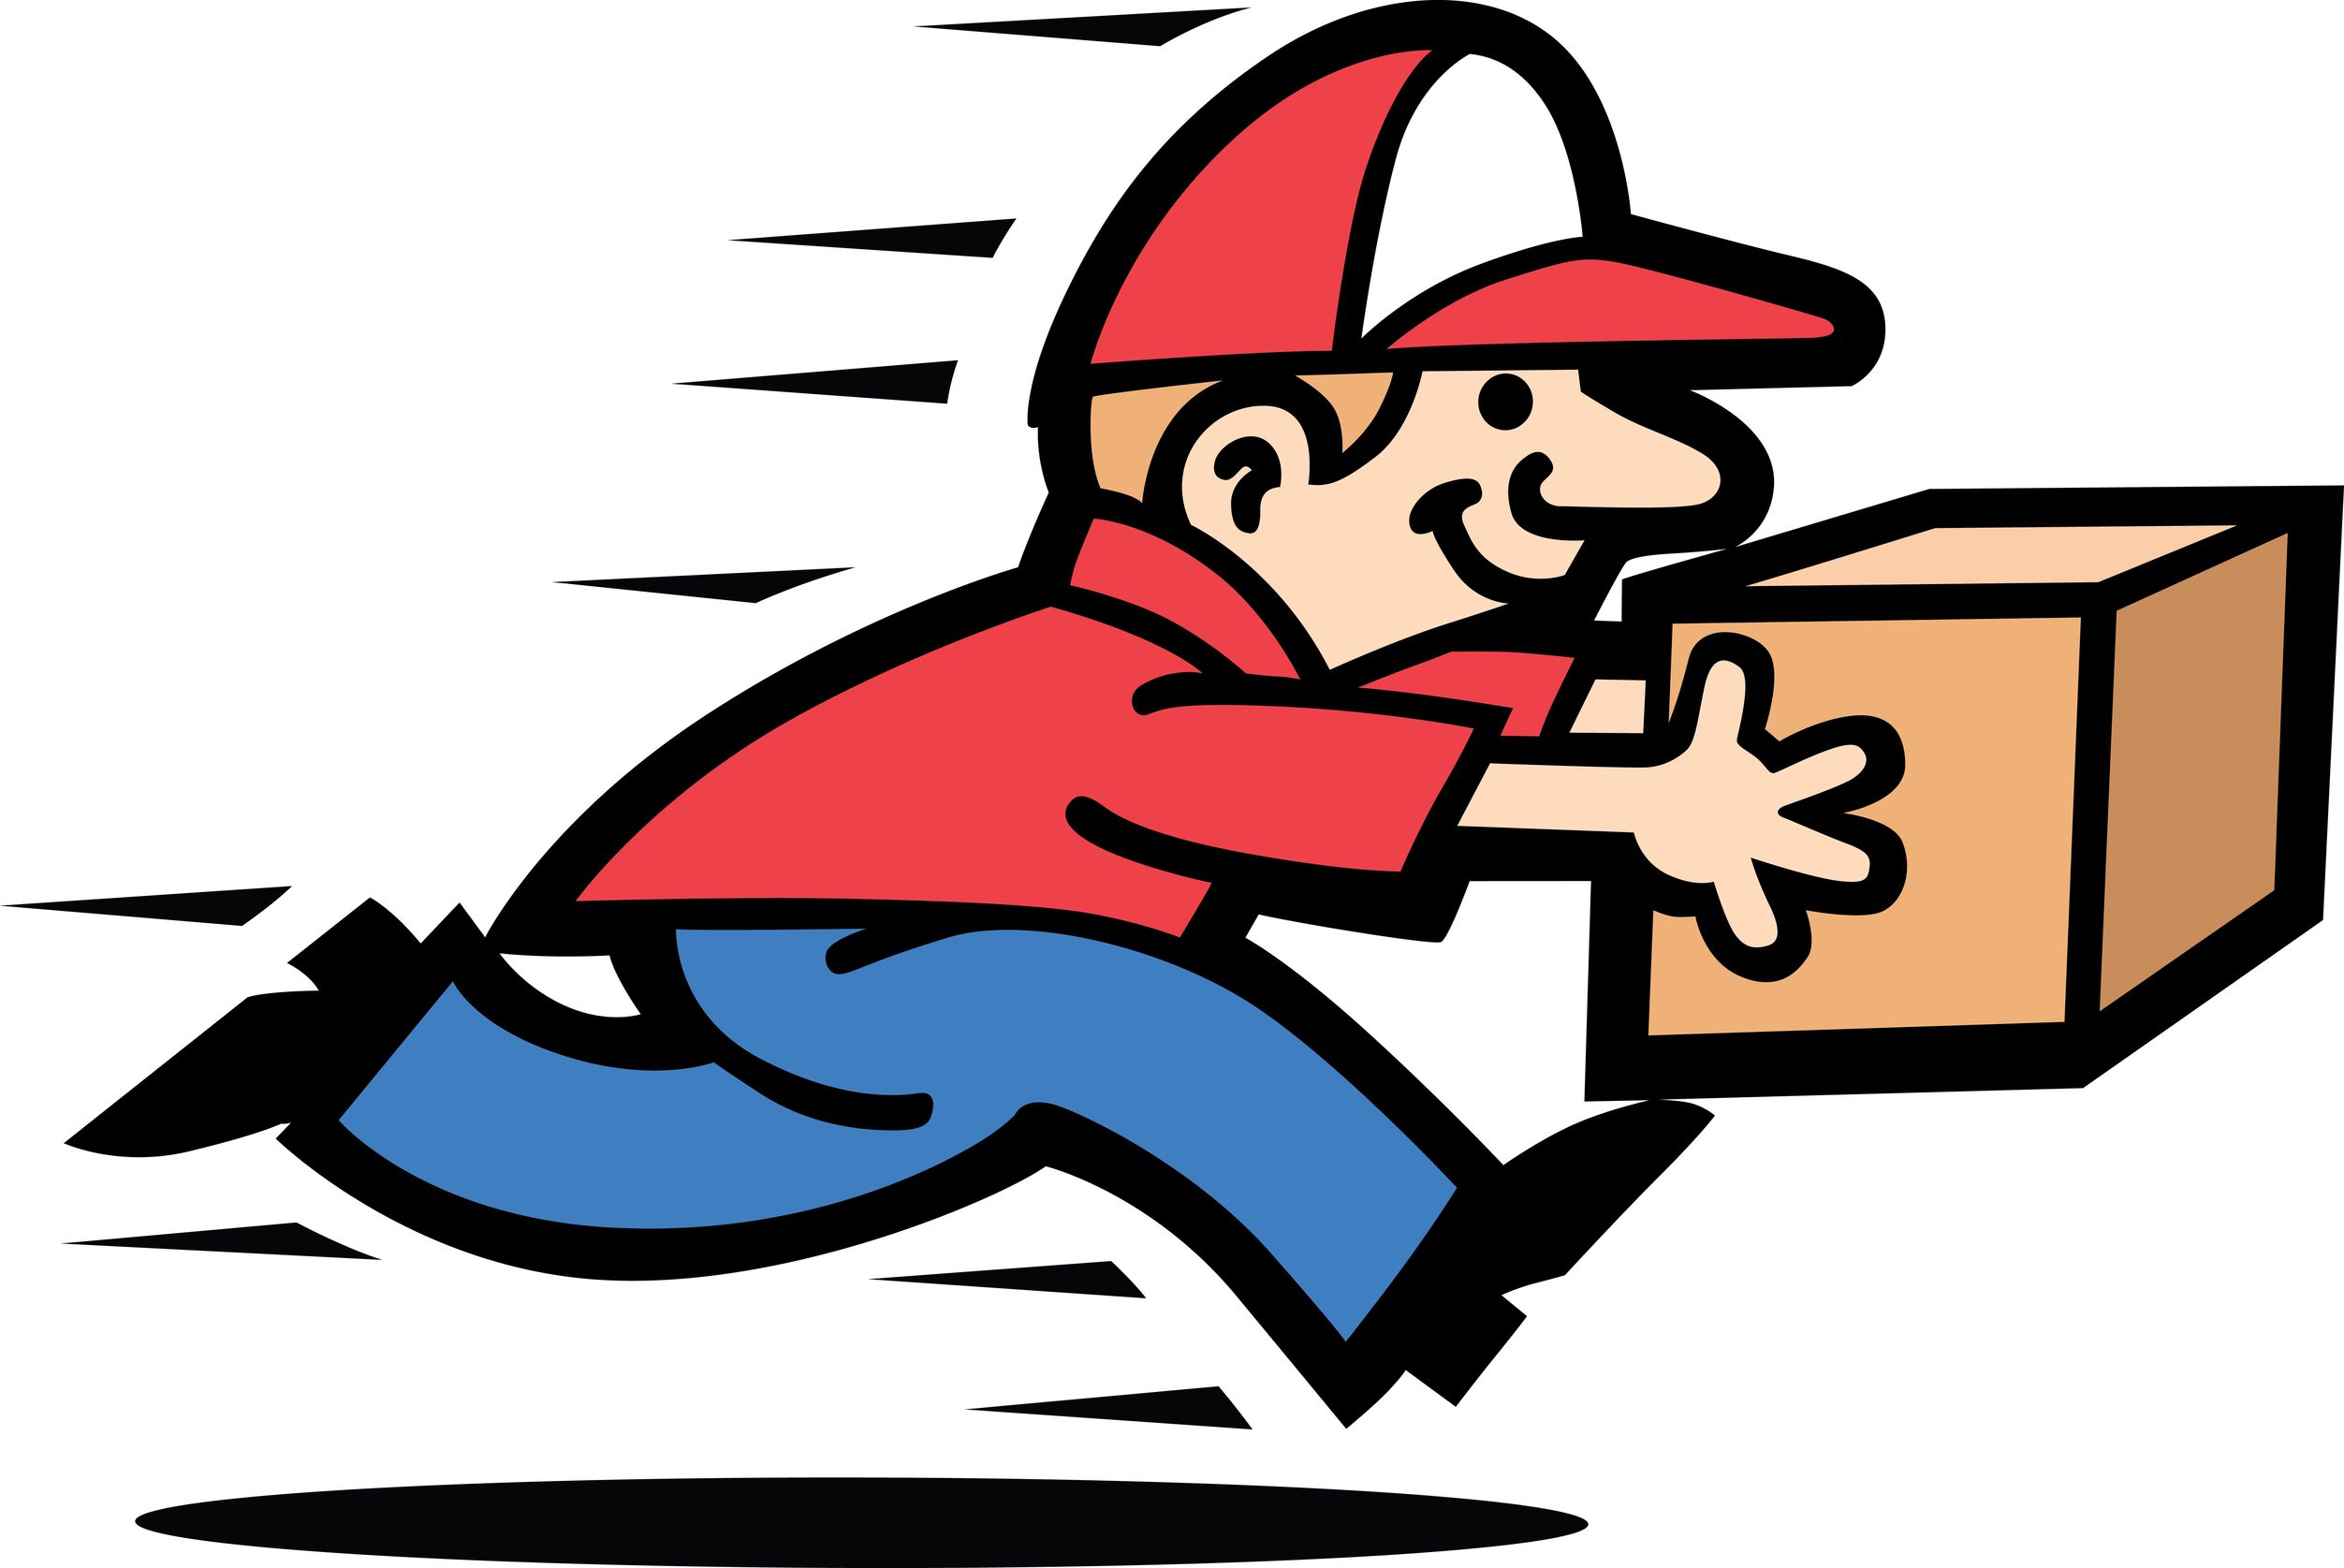 Delivery clipart speedy delivery. Information for be slim